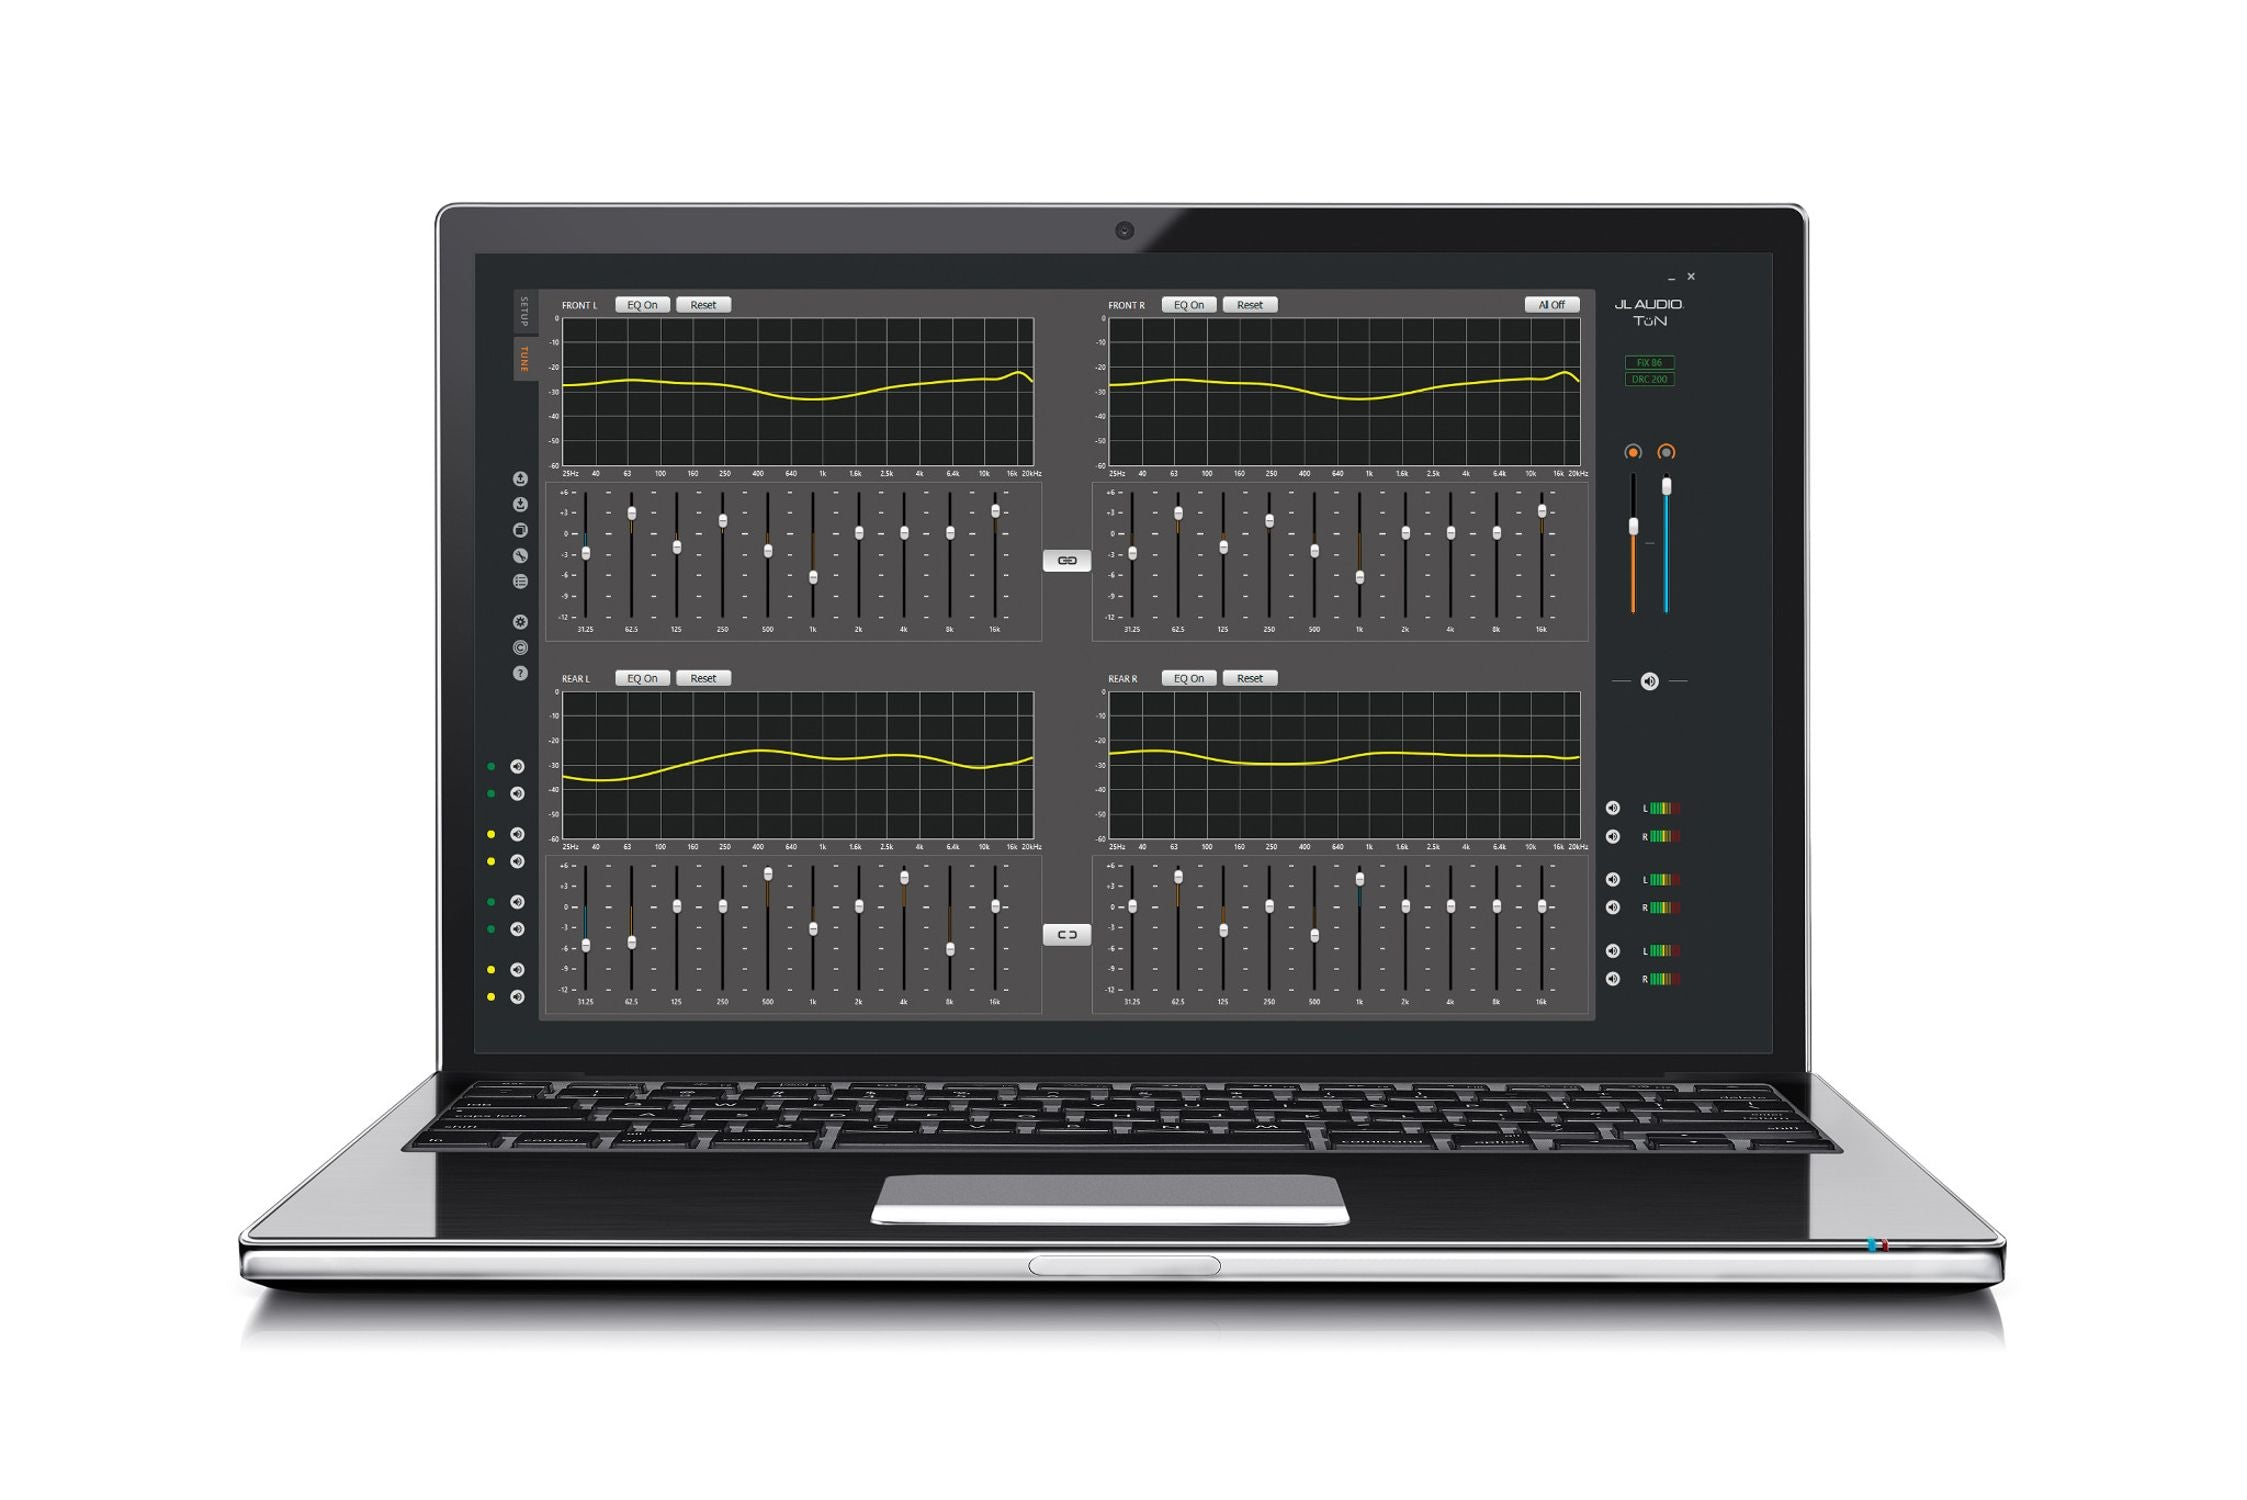 Laptop showing the Tune Window in TüN Software for FiX-86